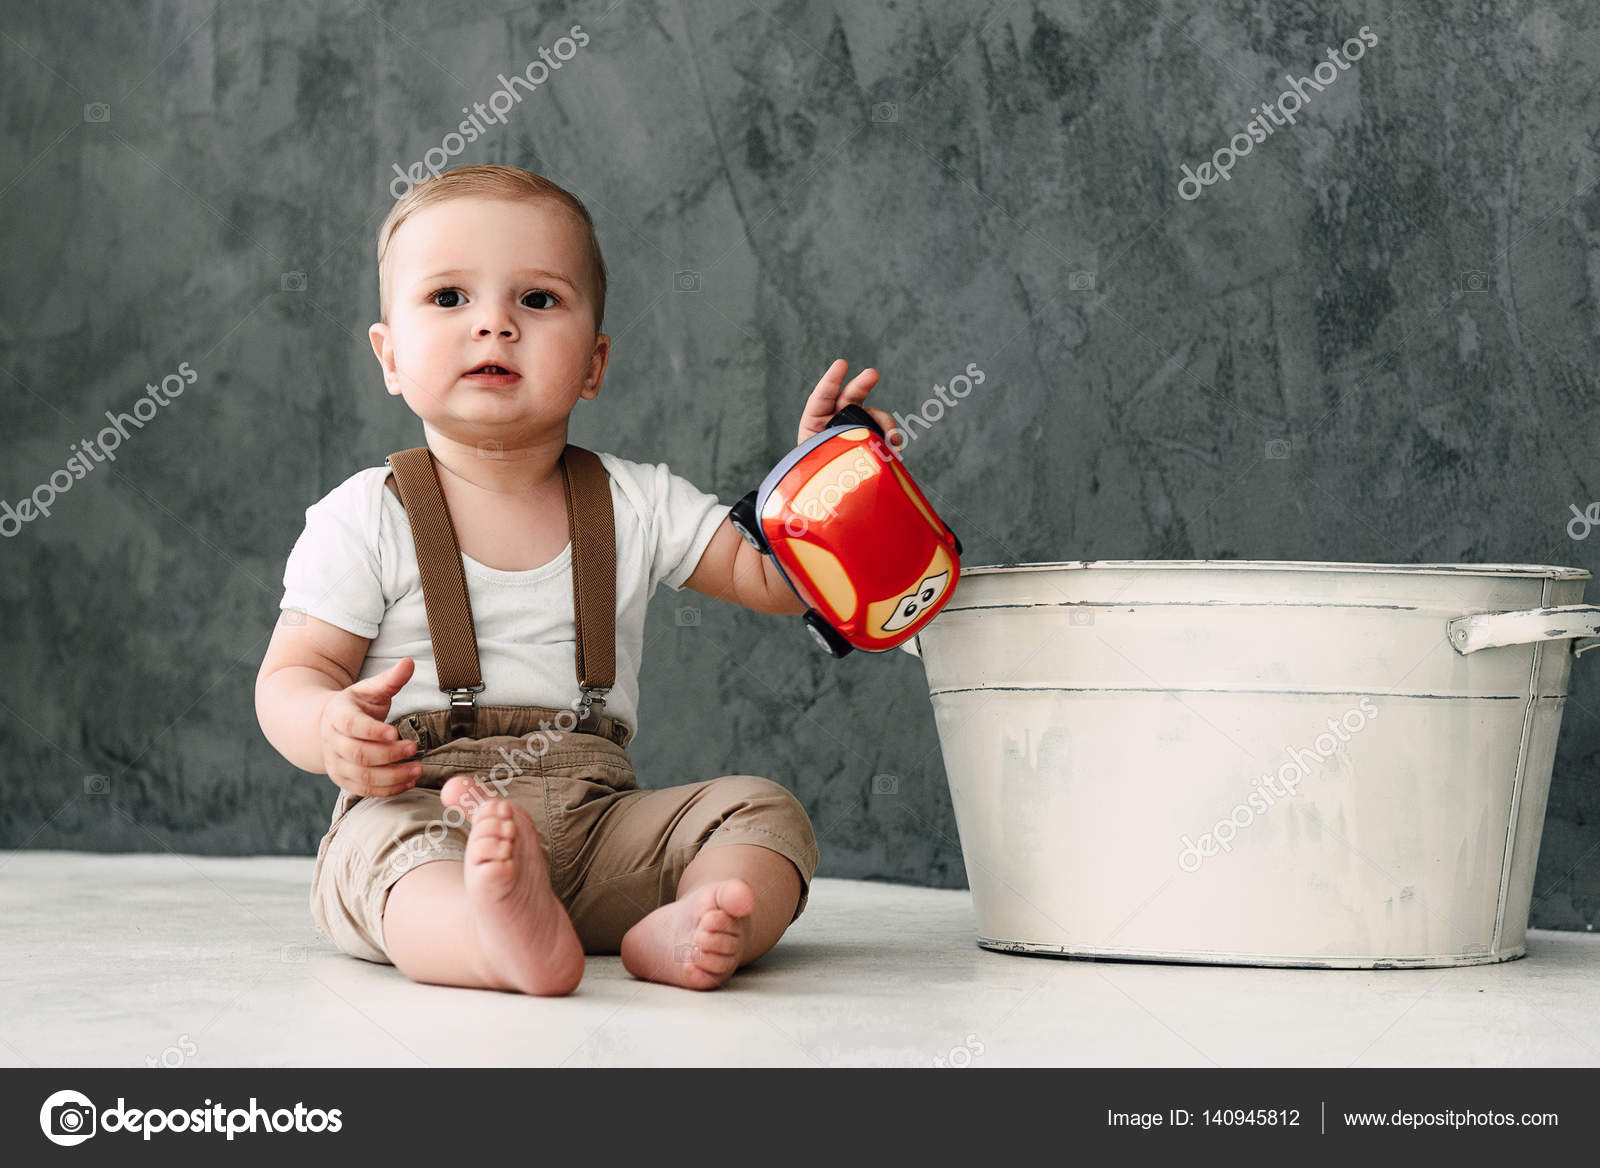 Portrait Of Lovely Little Boy Happy Smiling Celebrating 1 Year Birthday One Old European Sitting On Floor In Studio Photo By